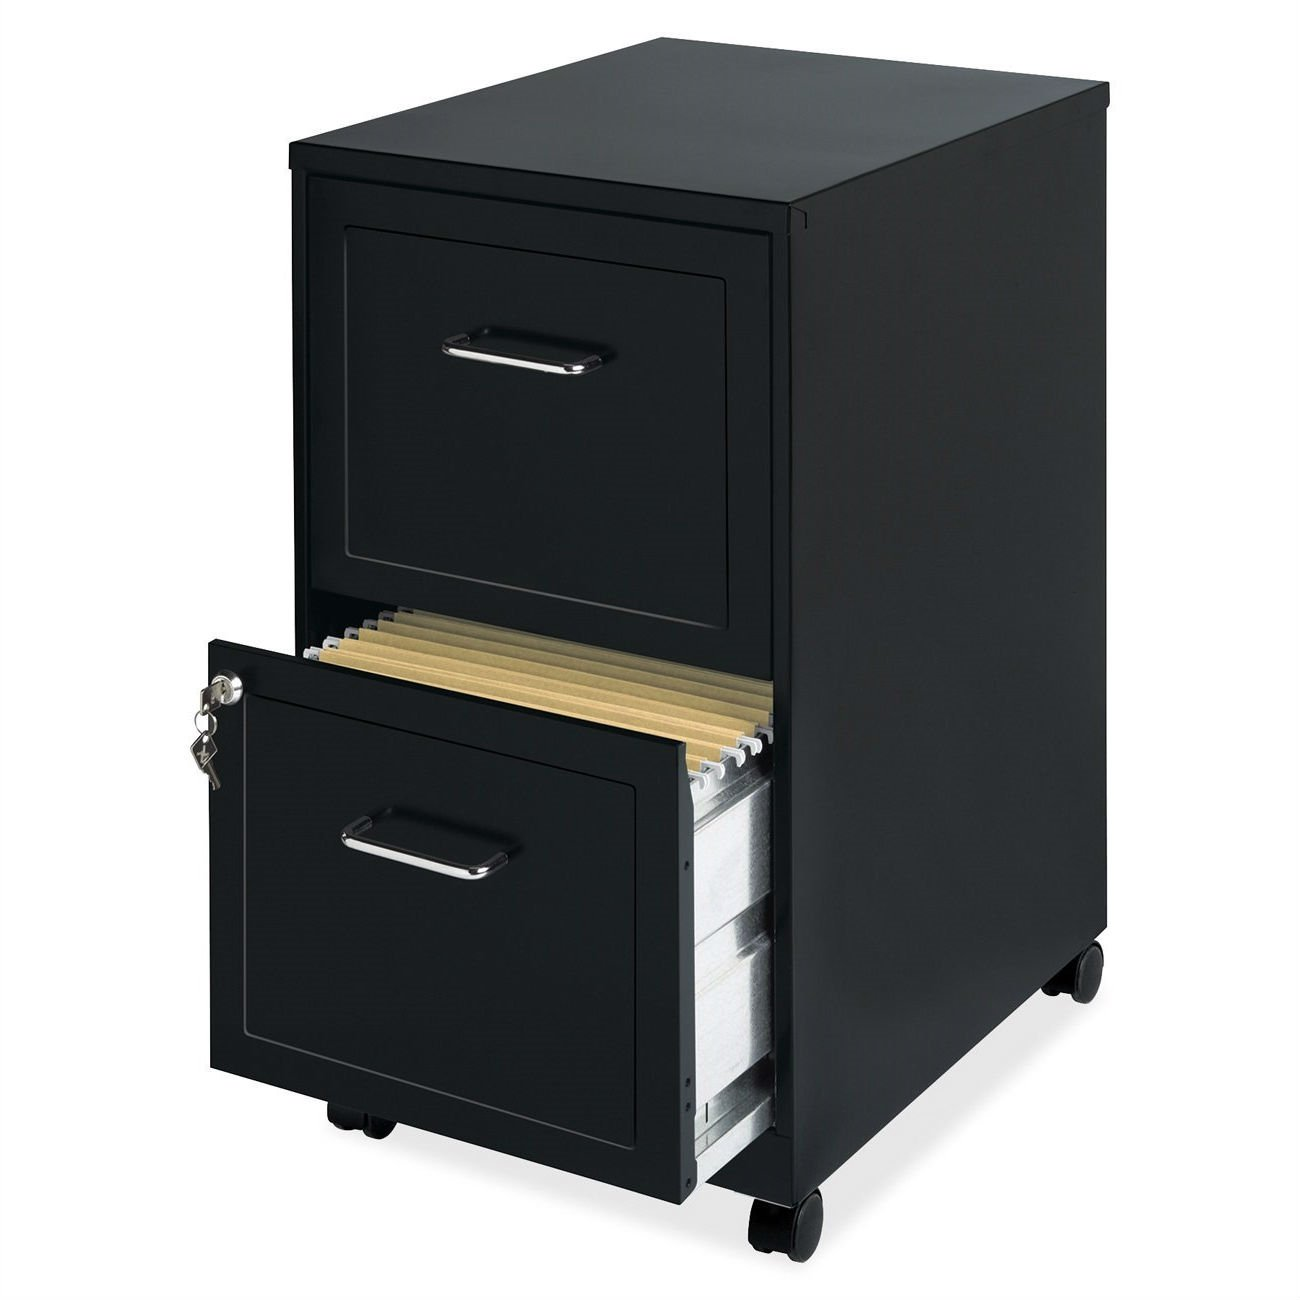 Black Metal 2-Drawer Filing Cabinet with Rolling Casters / Wheels